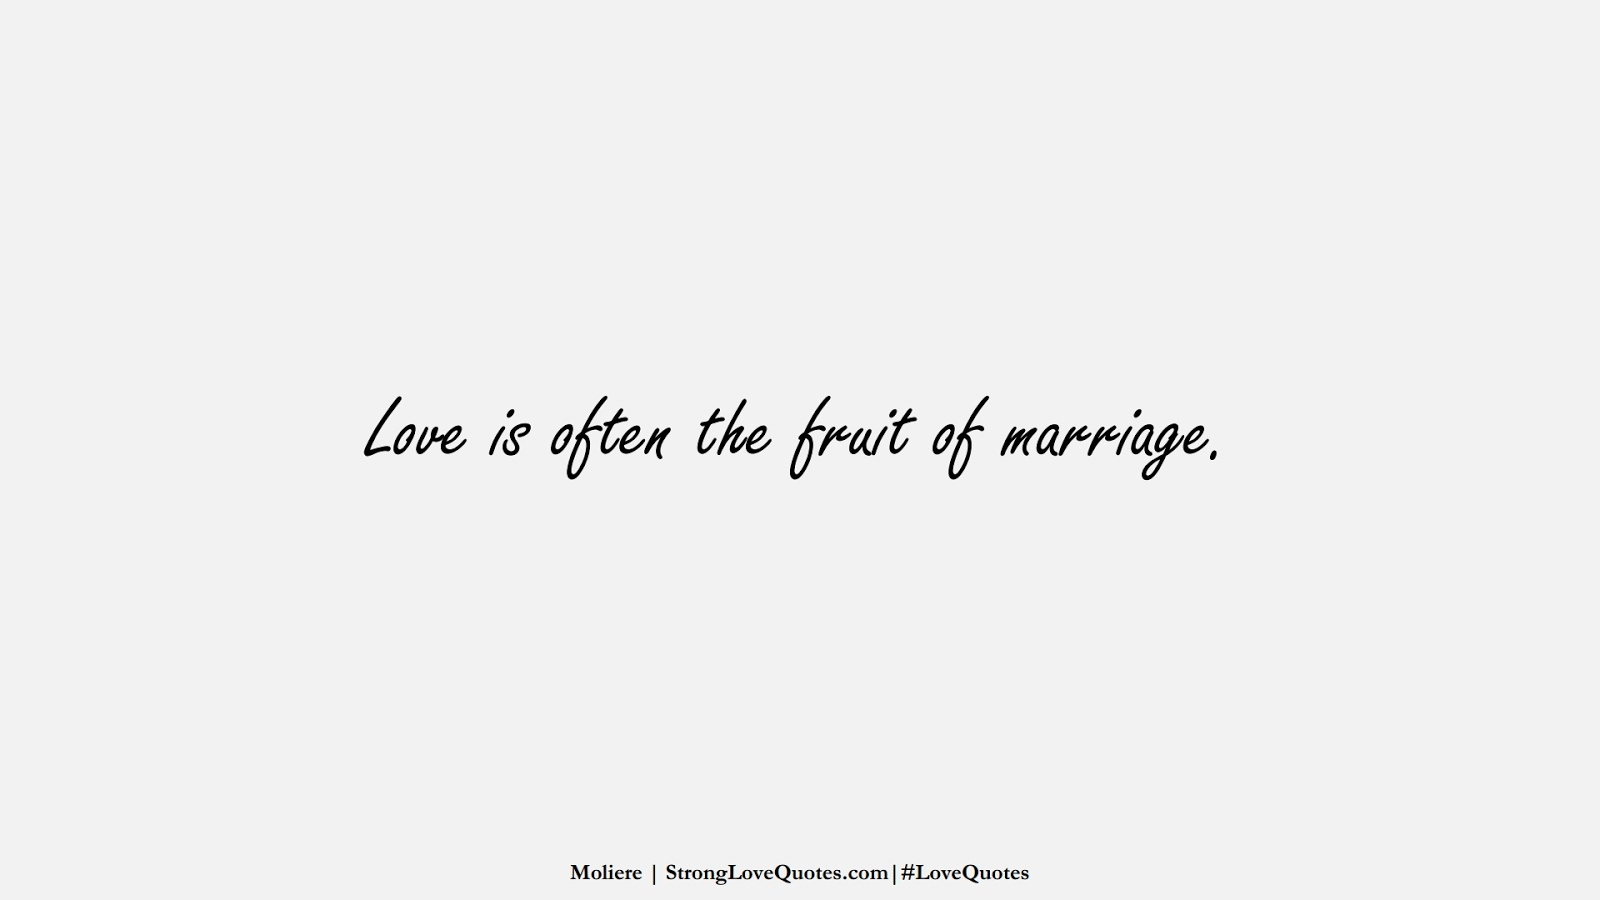 Love is often the fruit of marriage. (Moliere);  #LoveQuotes